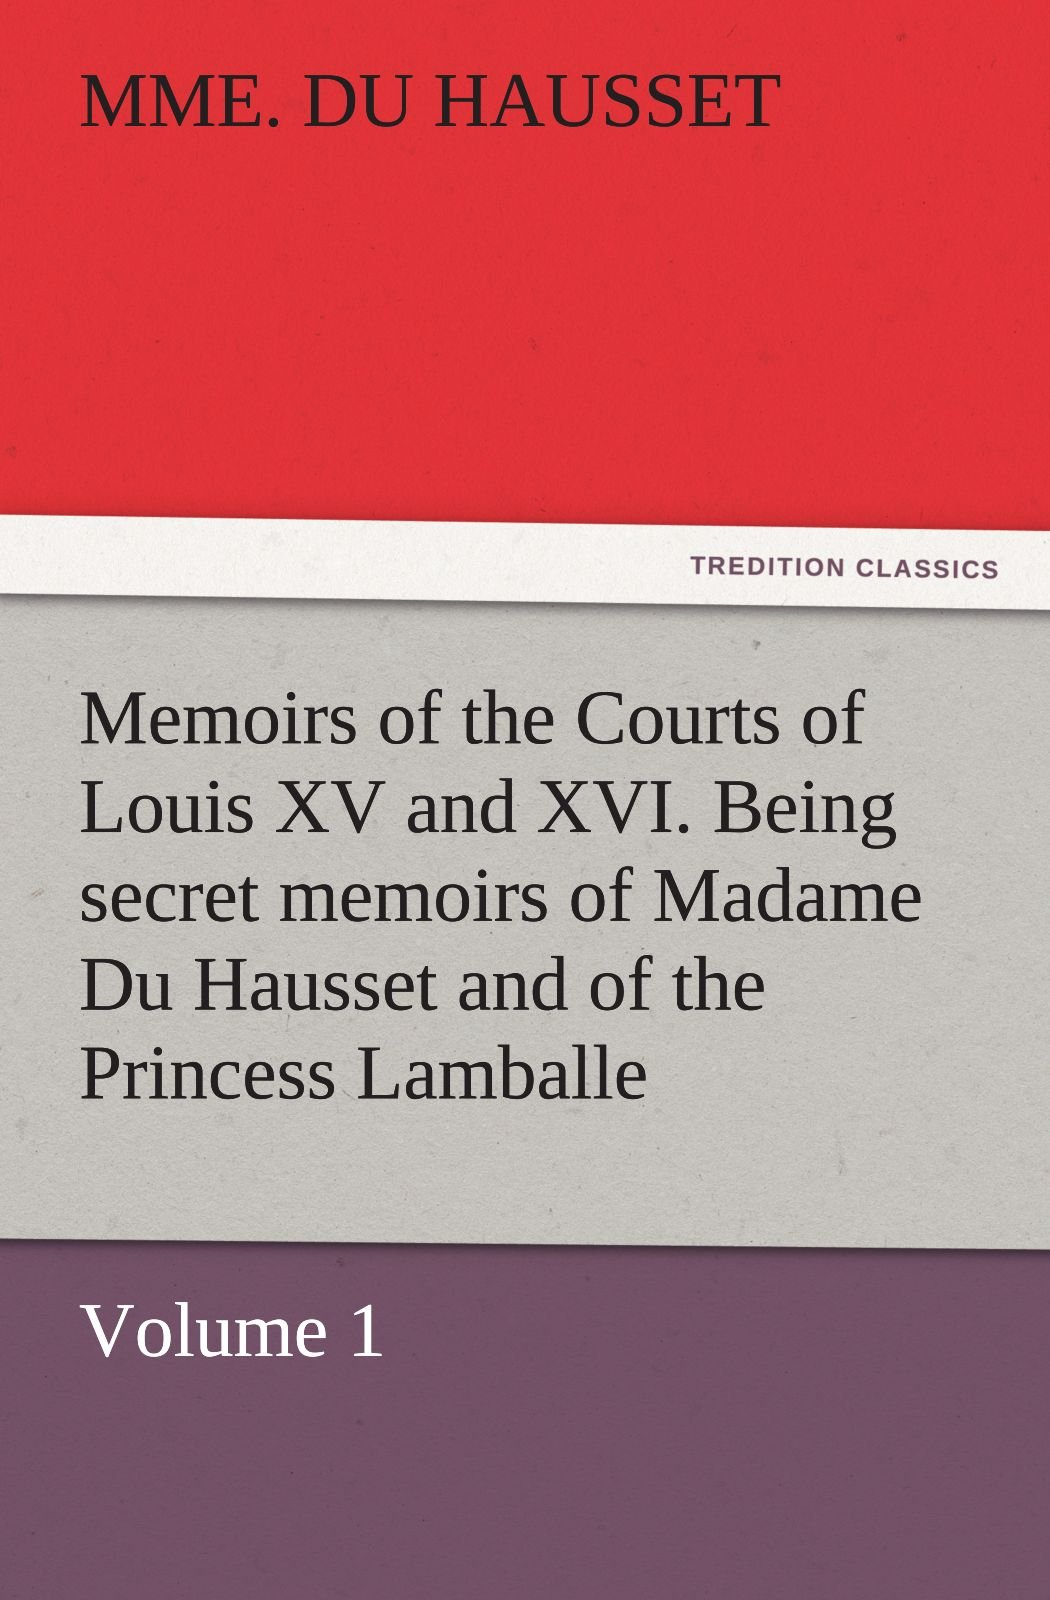 Memoirs of the Courts of Louis XV and XVI. Being secret memoirs of Madame Du Hausset, lady's maid to Madame de Pompadour, and of the Princess Lamballe — Volume 1 (TREDITION CLASSICS) pdf